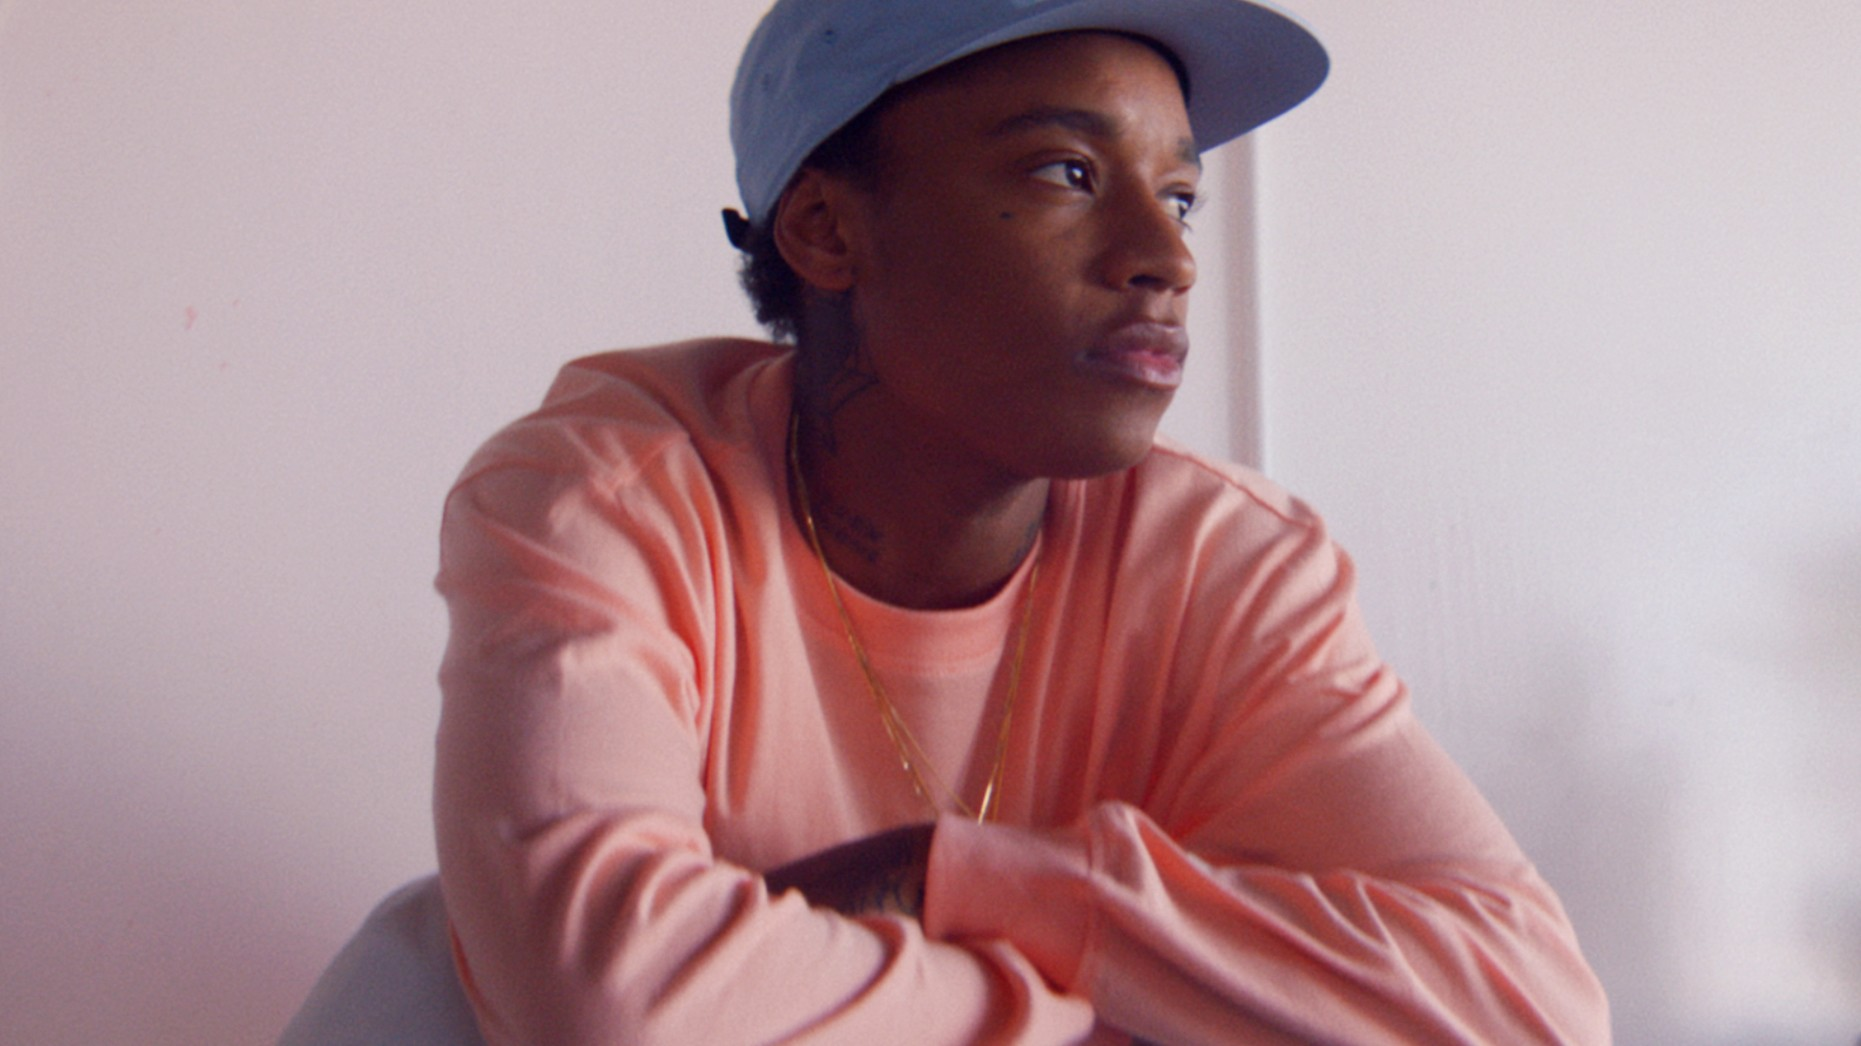 watch rejjie snow's new video for keep your head up exclusively on i-D!